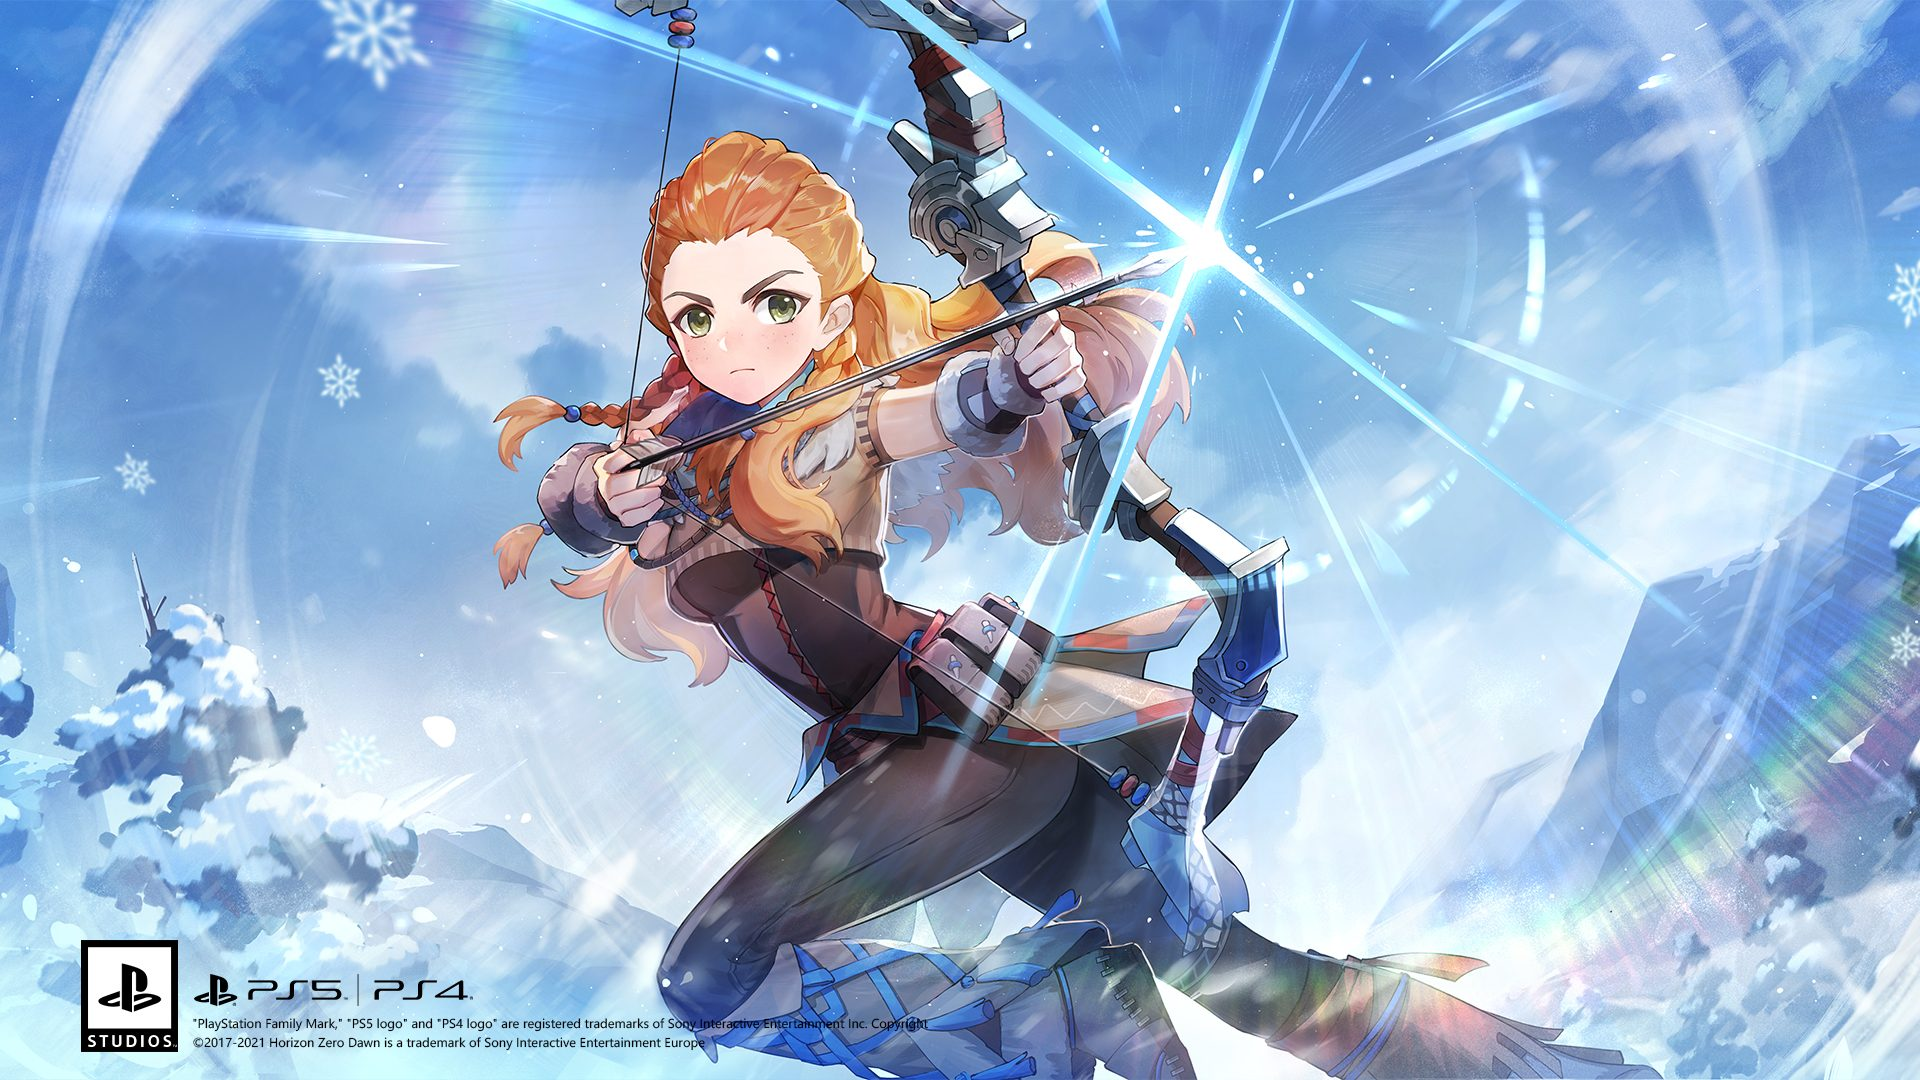 genshin-effects-edition-2.one:-join-the-hunt-with-aloy-in-the-environment-of-teyvat